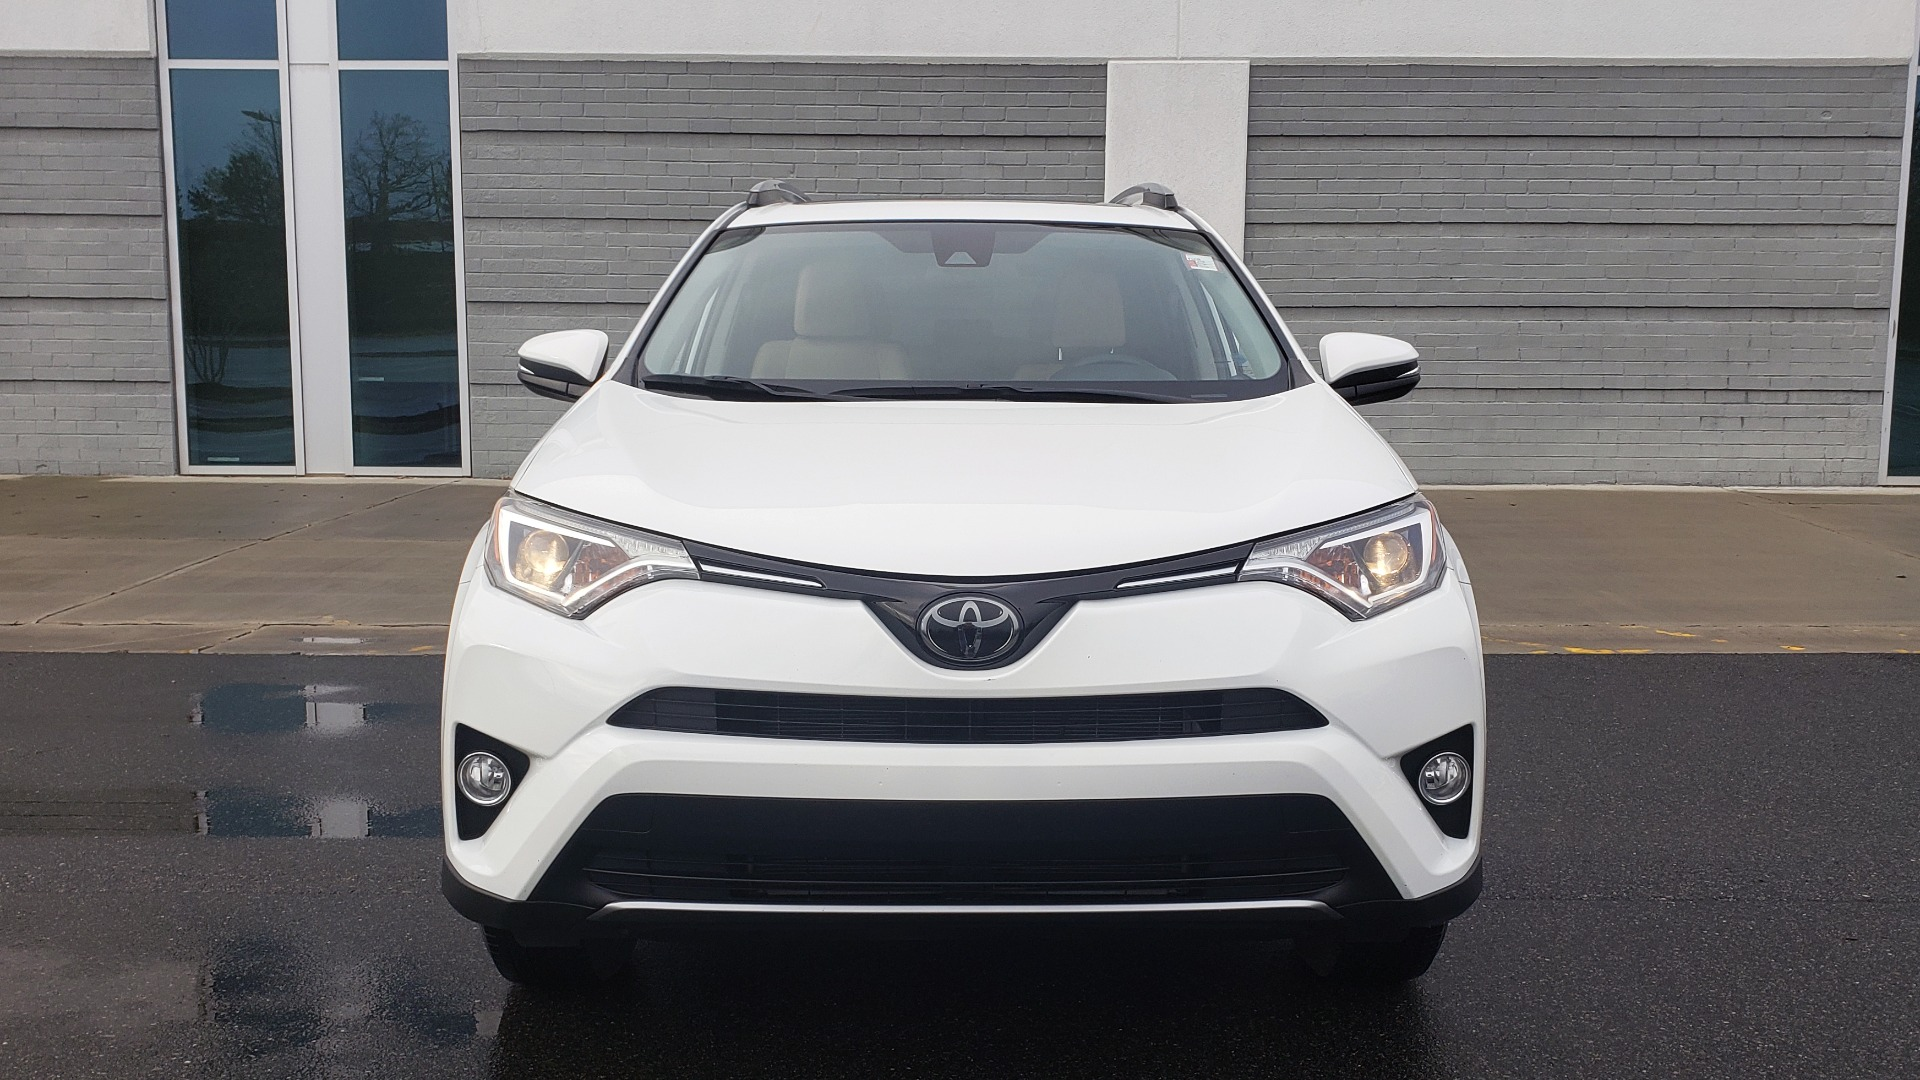 Used 2018 Toyota RAV4 XLE / FWD / 4-CYL / 6-SPD AUTO / BSM / REAR CROSS TRAFFIC ALERT for sale Sold at Formula Imports in Charlotte NC 28227 20